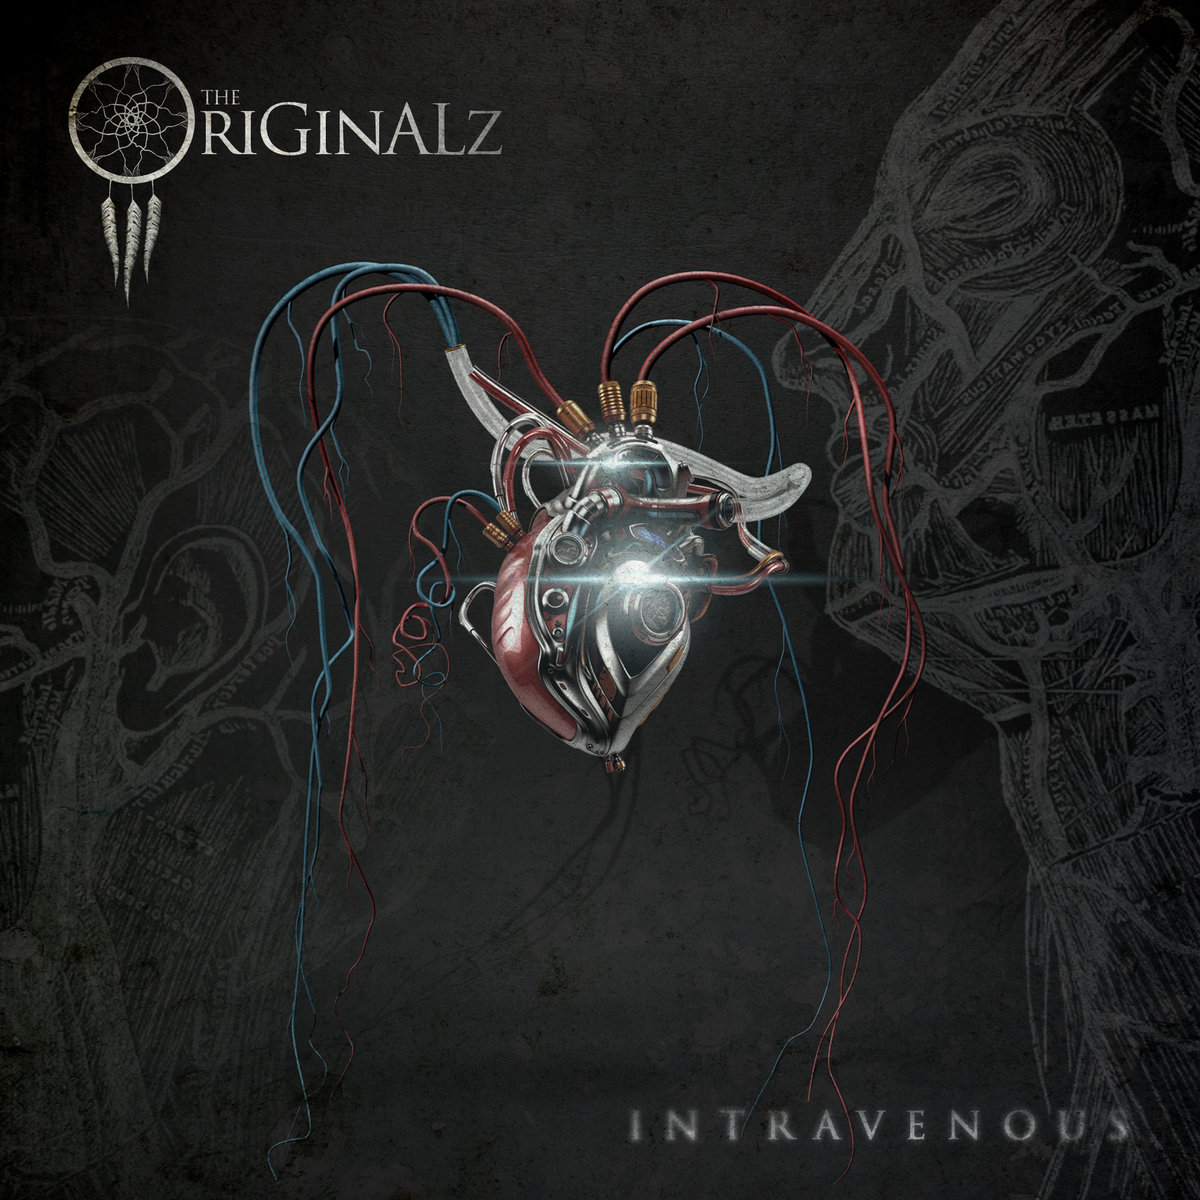 The OriGinALz feat. The Digital Connection - By Neptune @ 'Intravenous' album (Austin)